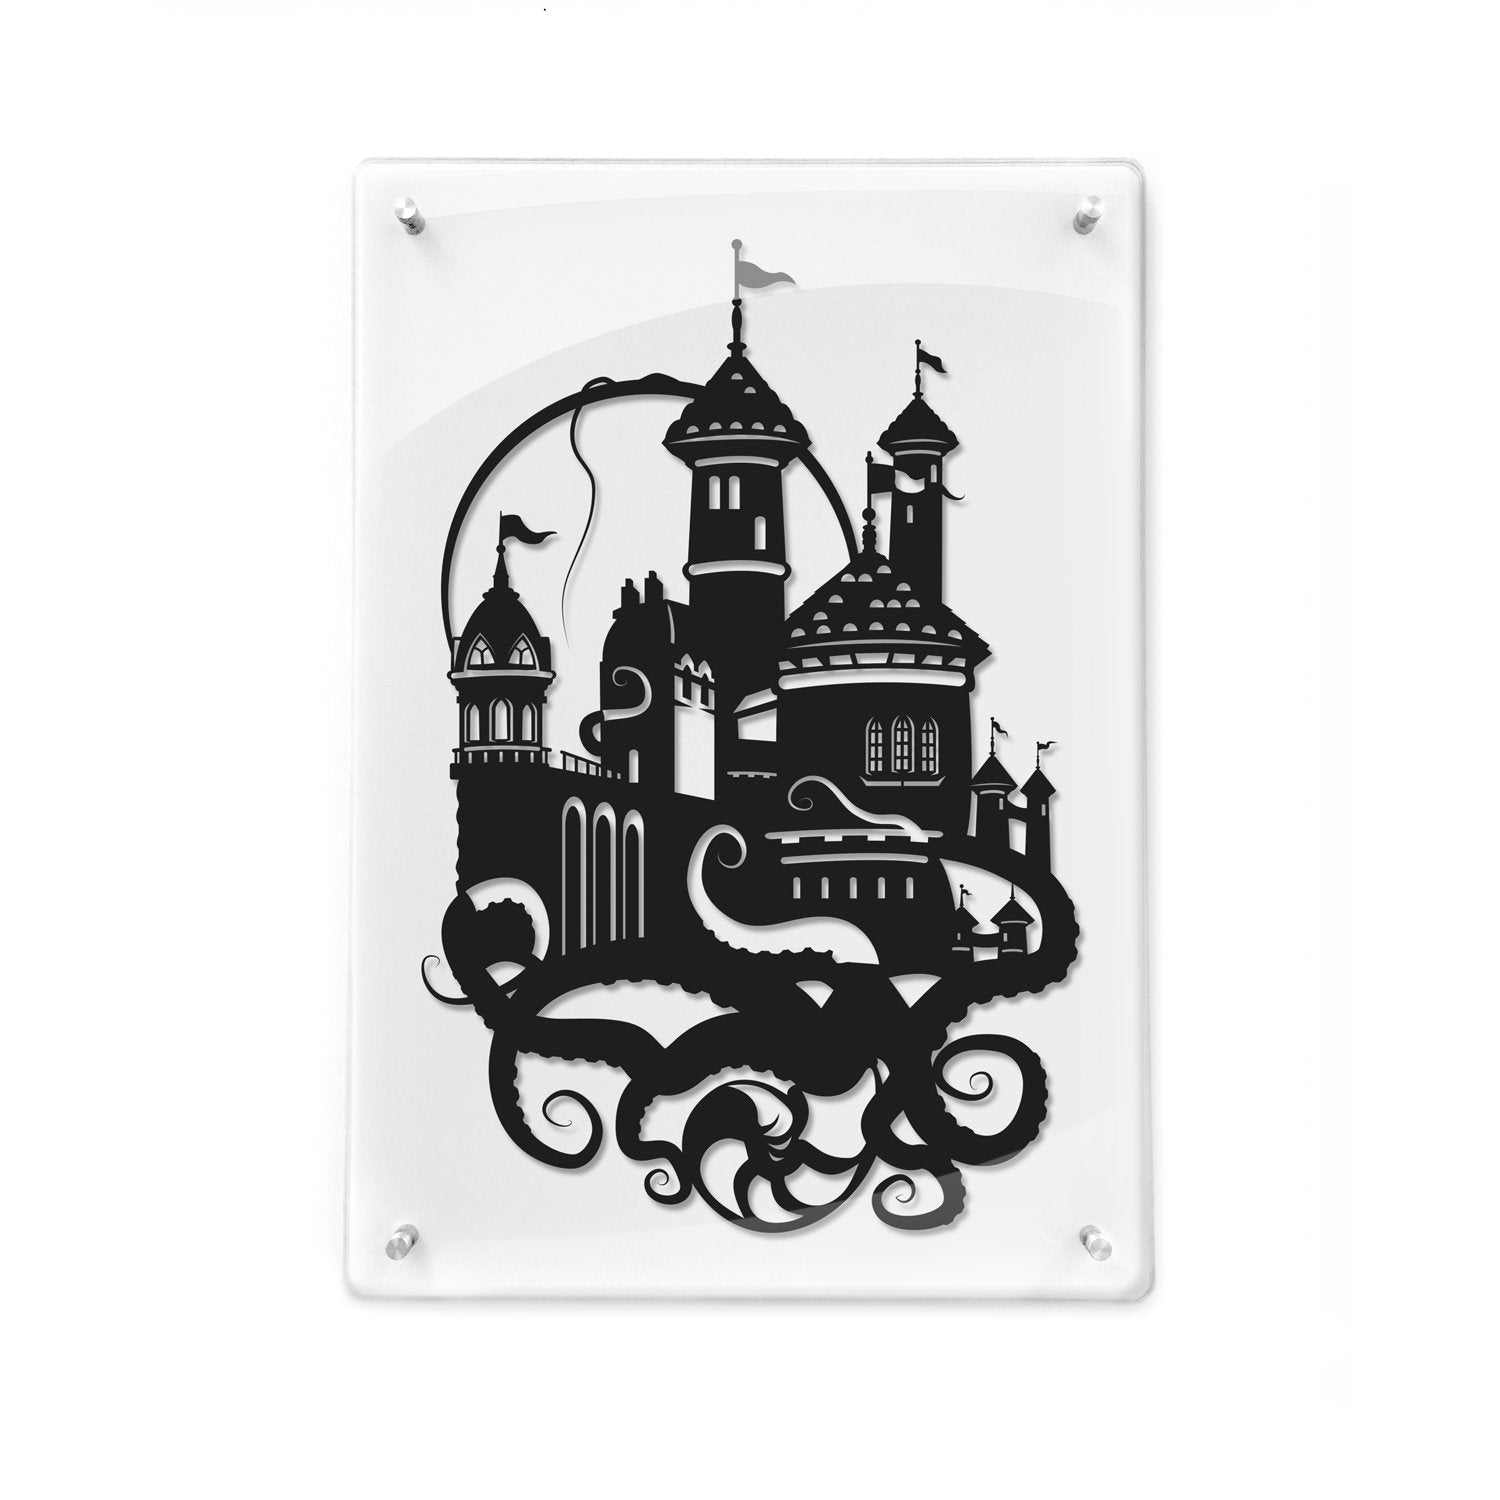 FRAMED Little Mermaid Prince Eric's Castle // silhouette hand cut paper craft framed wall decor unique art disney inspired artwork